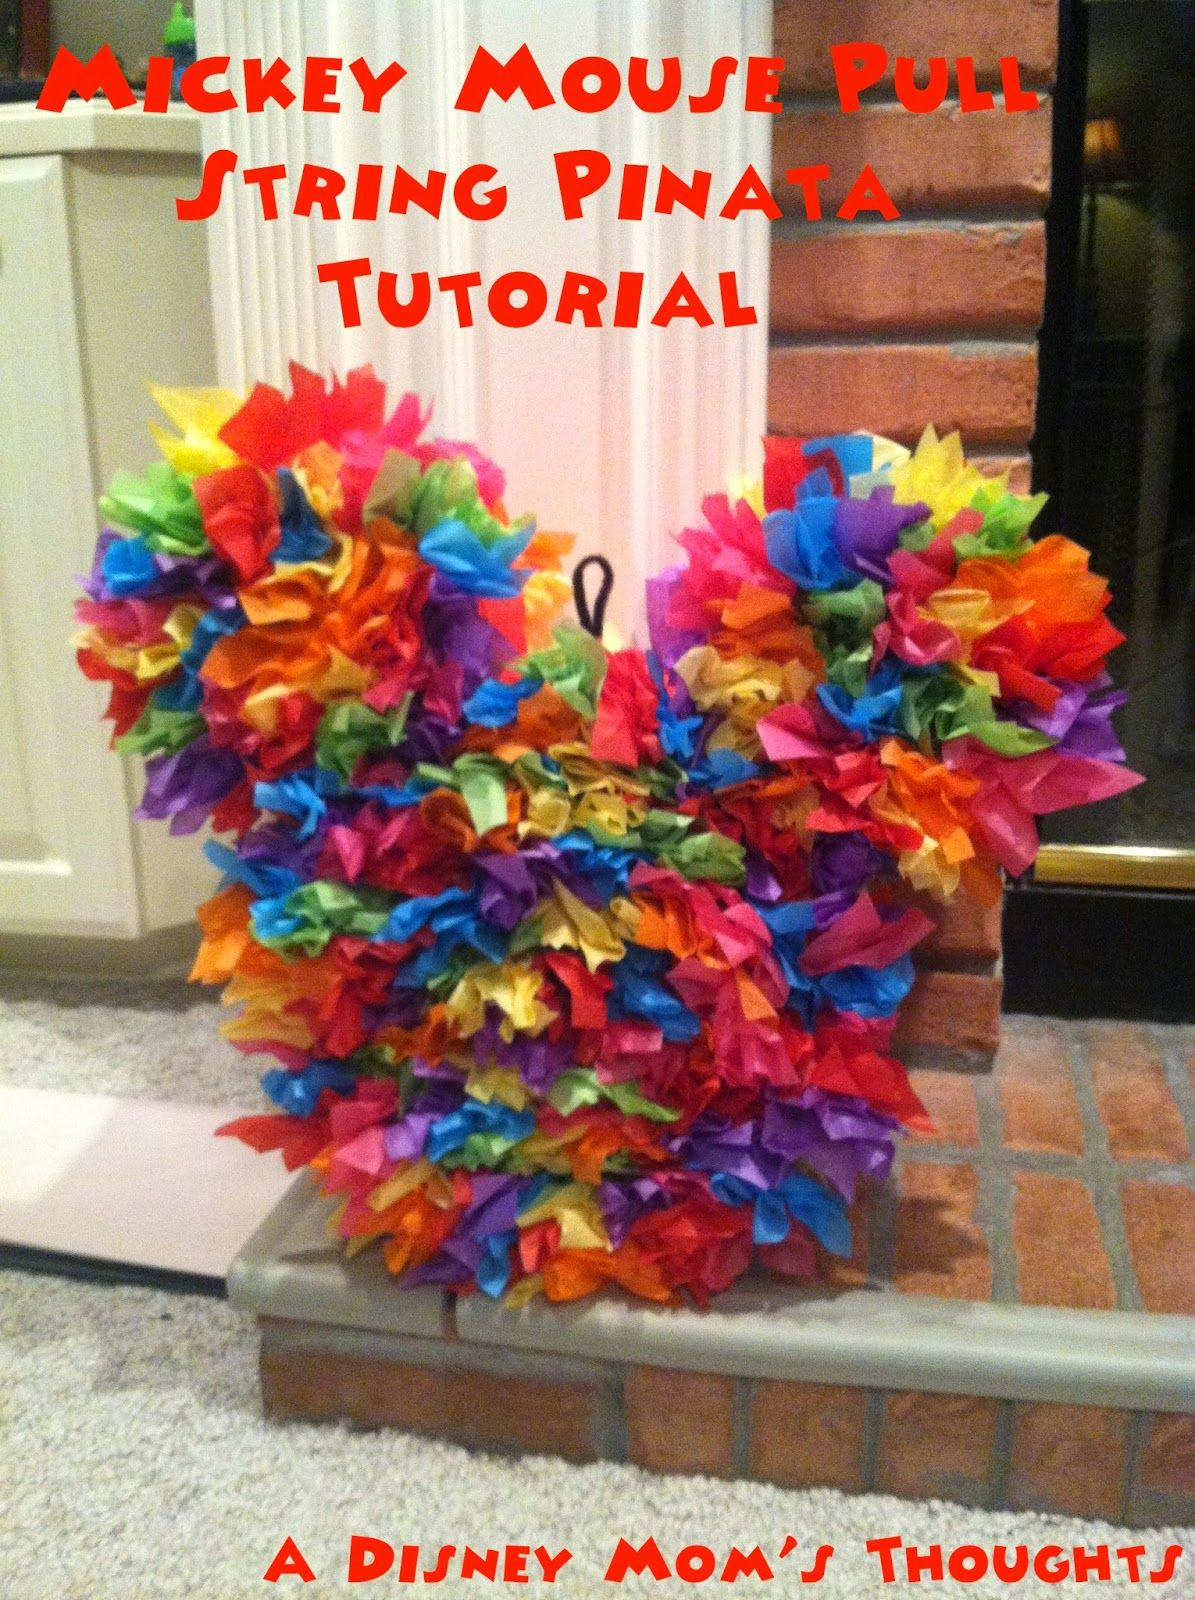 Mickey Mouse Pull String Pinata Tutorial | A Disney Mom's Thoughts